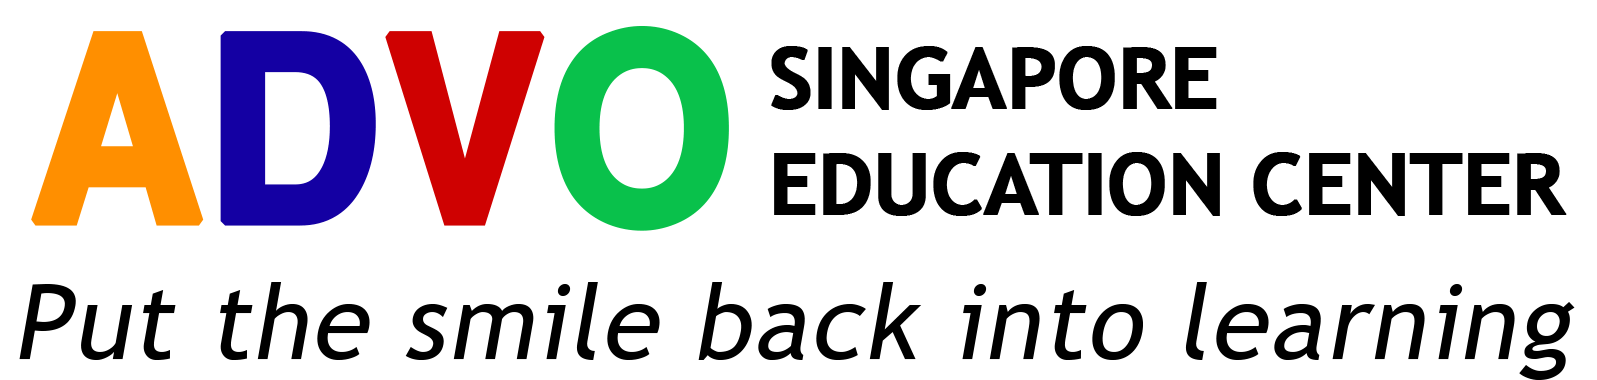 Advo Education Singapore Center